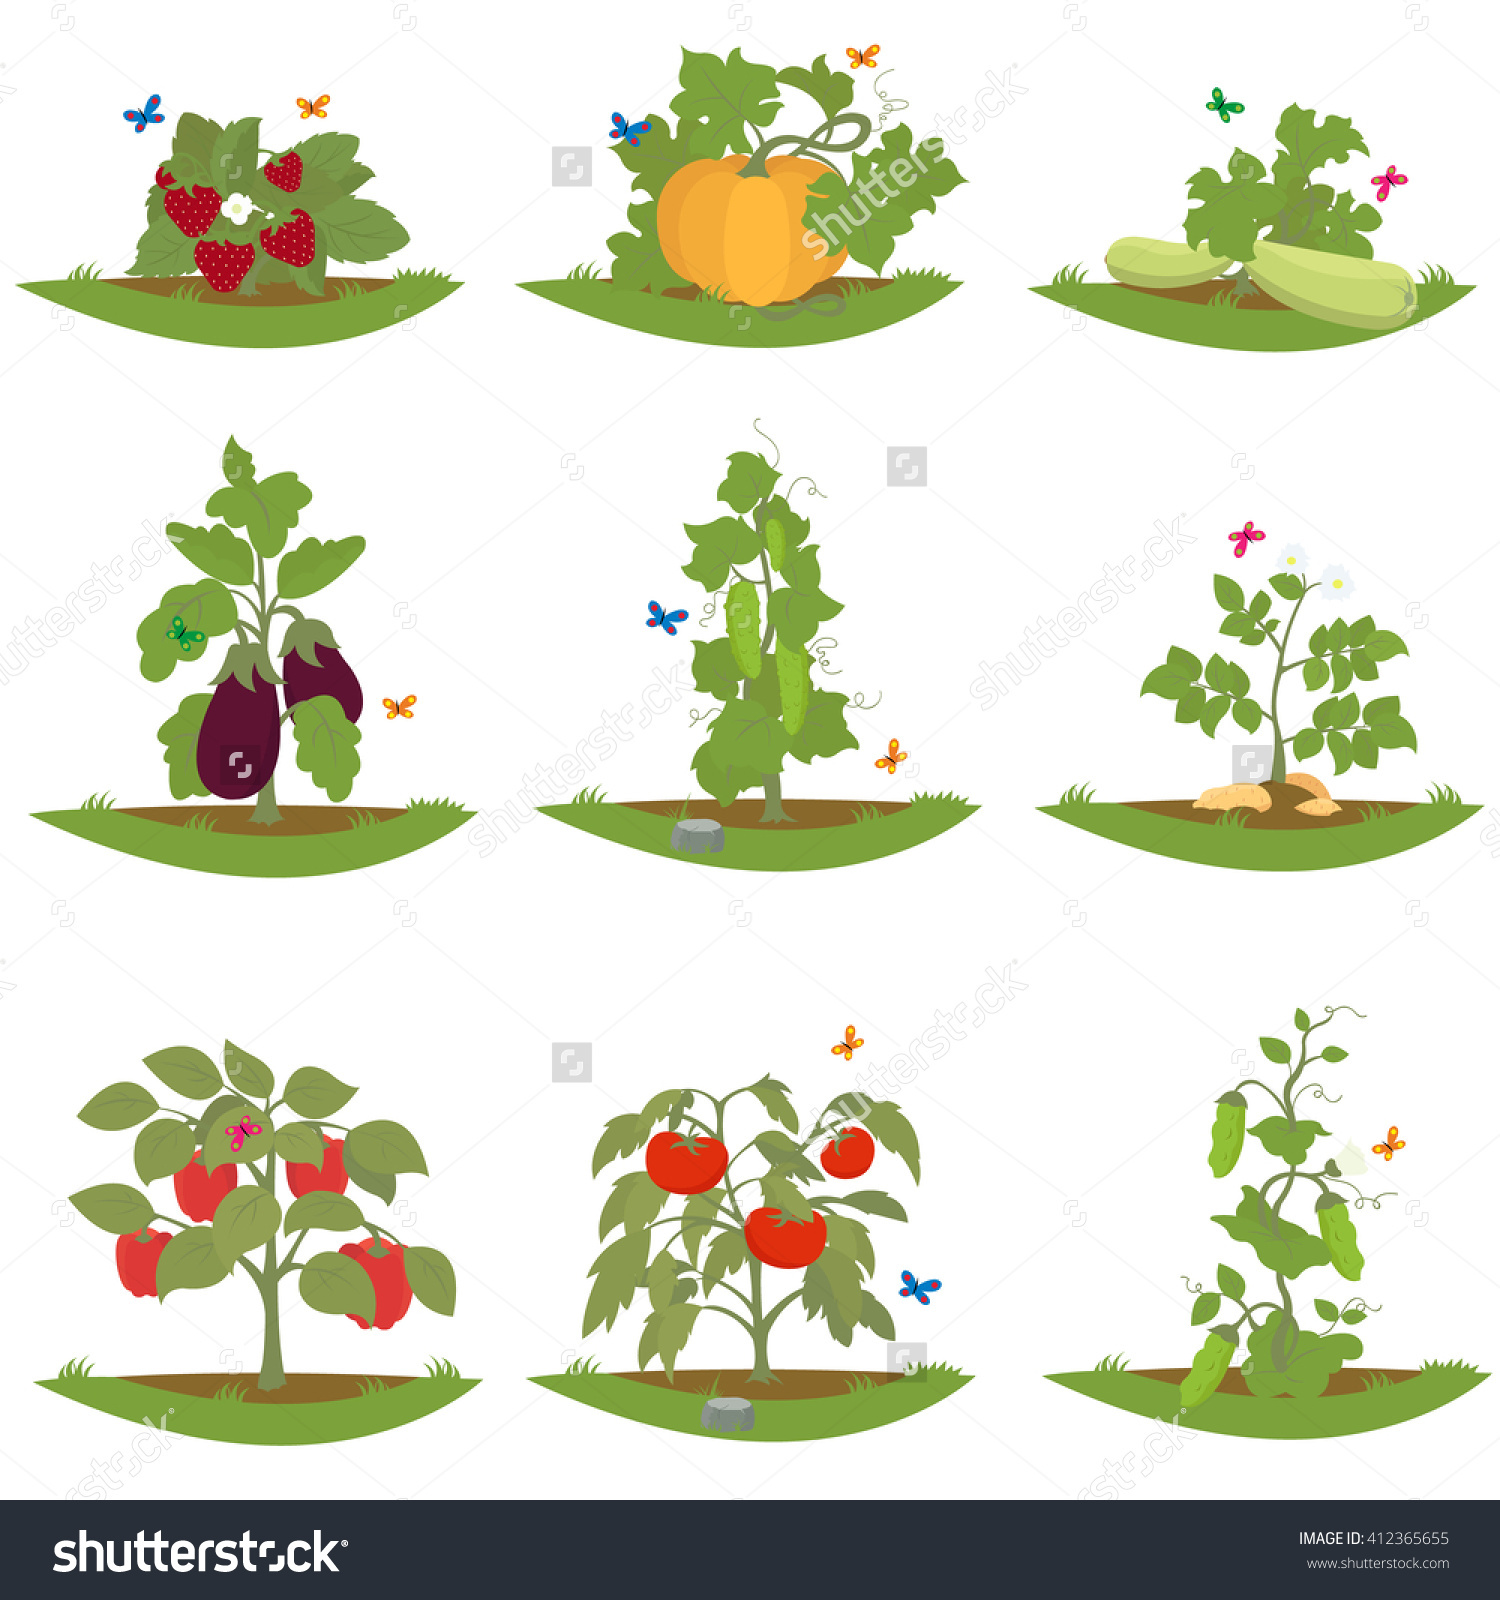 Bush Fruitbearing Plants Isolated Cultured Plants Stock Vector.